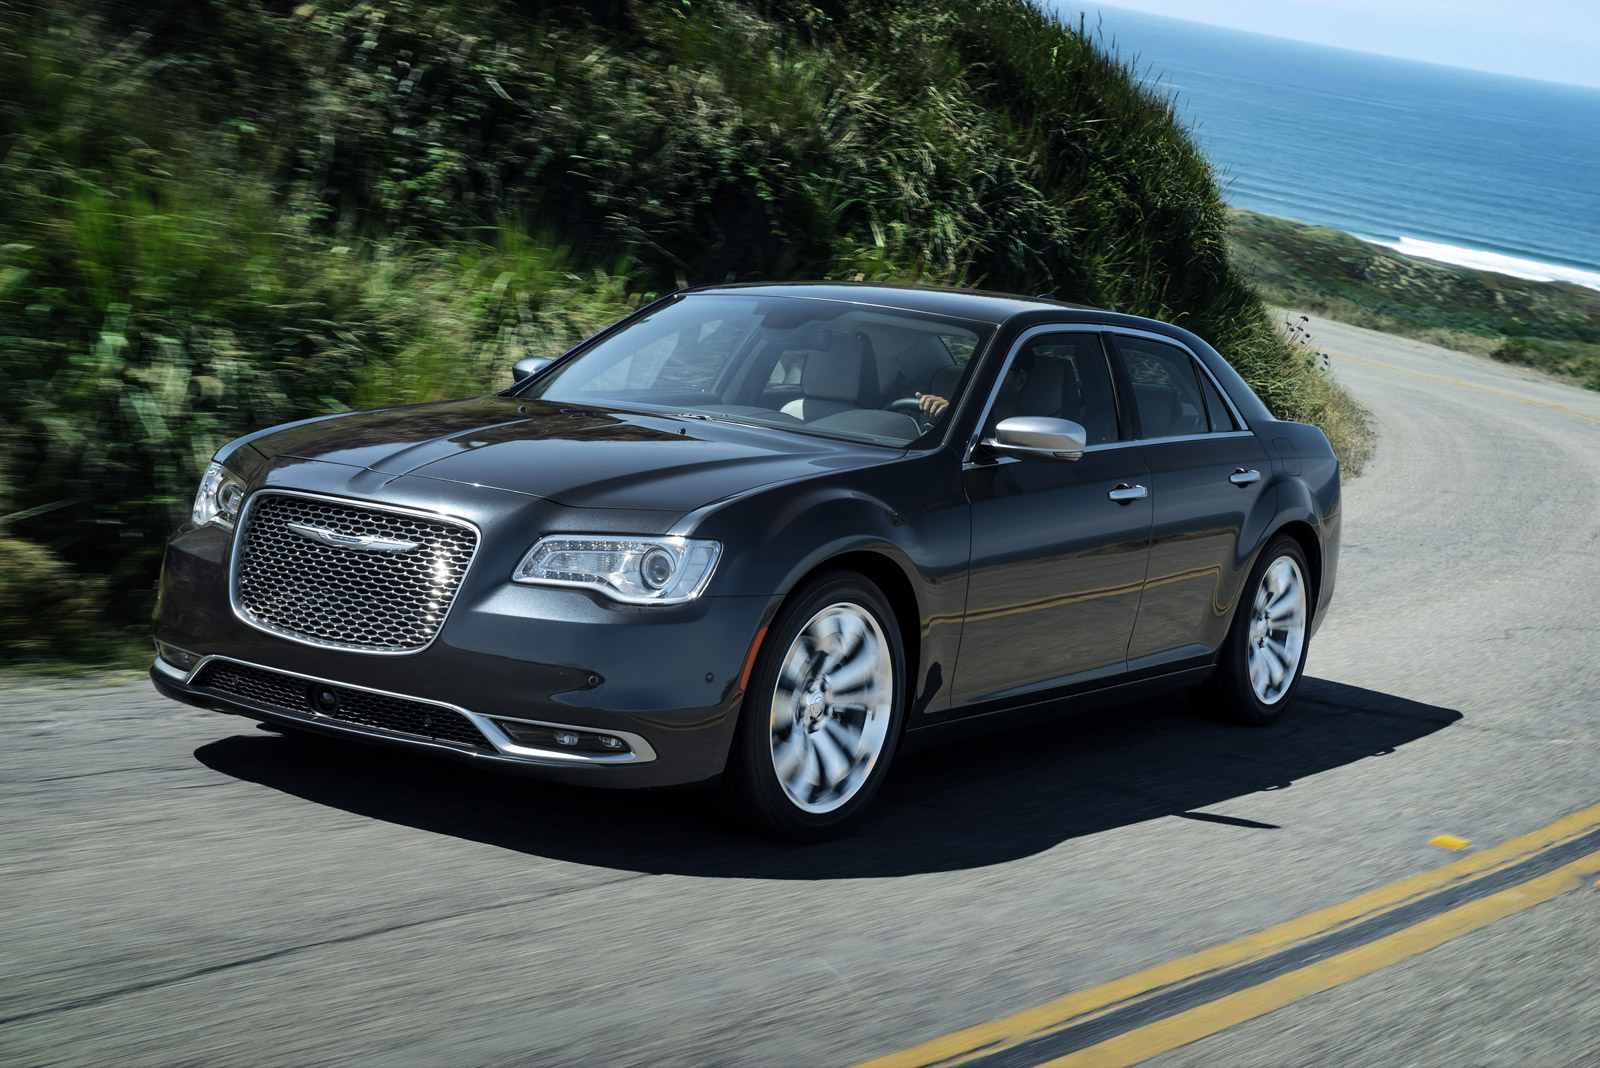 Jeep Fort Worth >> 2015 Chrysler 300 Review, Ratings, Specs, Prices, and ...